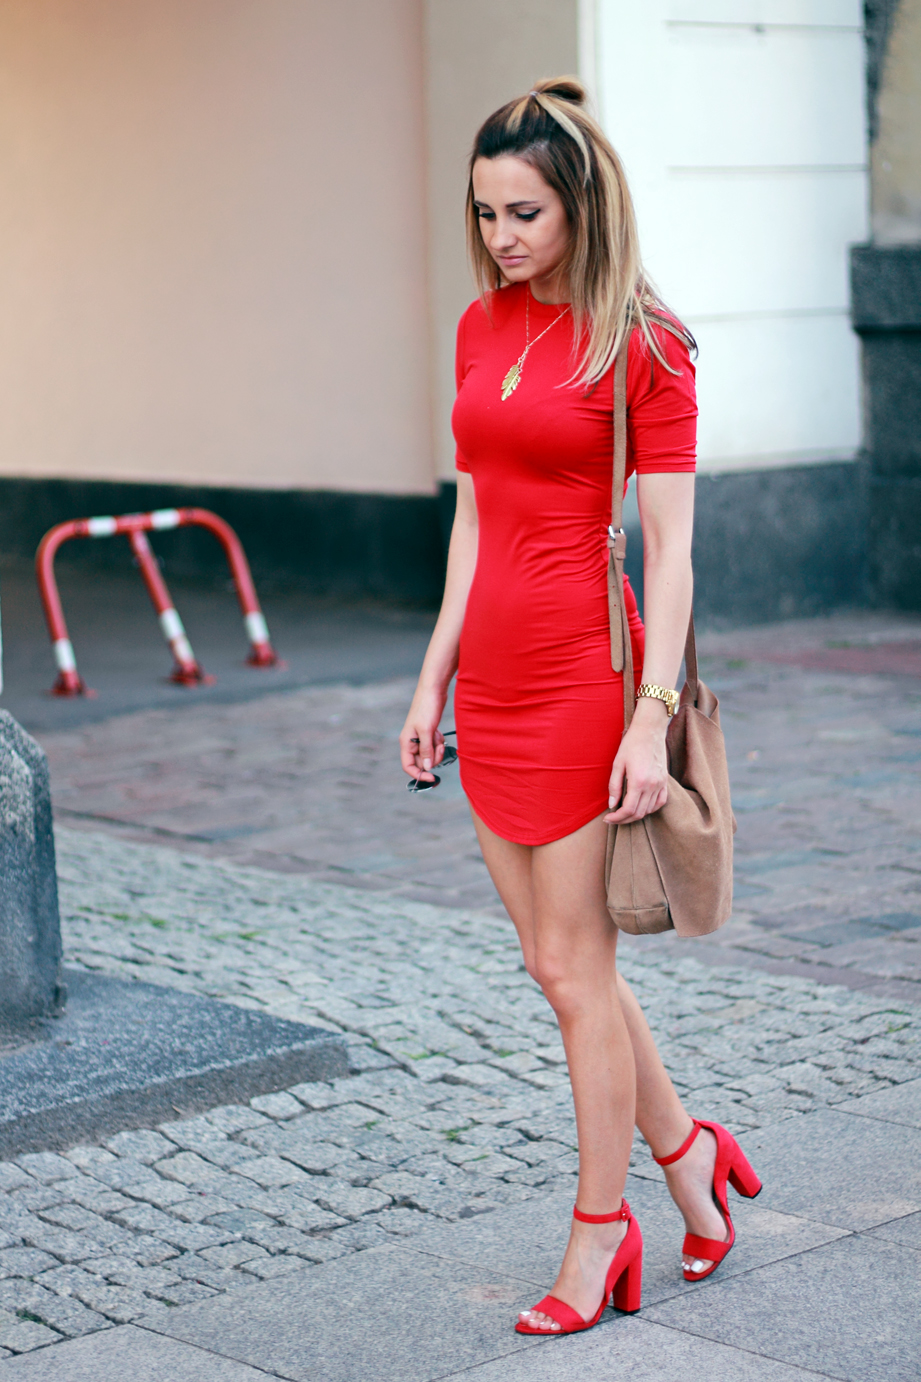 street style fashion red dress blonde blogger pretty girl tumblr ootd outfit lookbook look what to wear